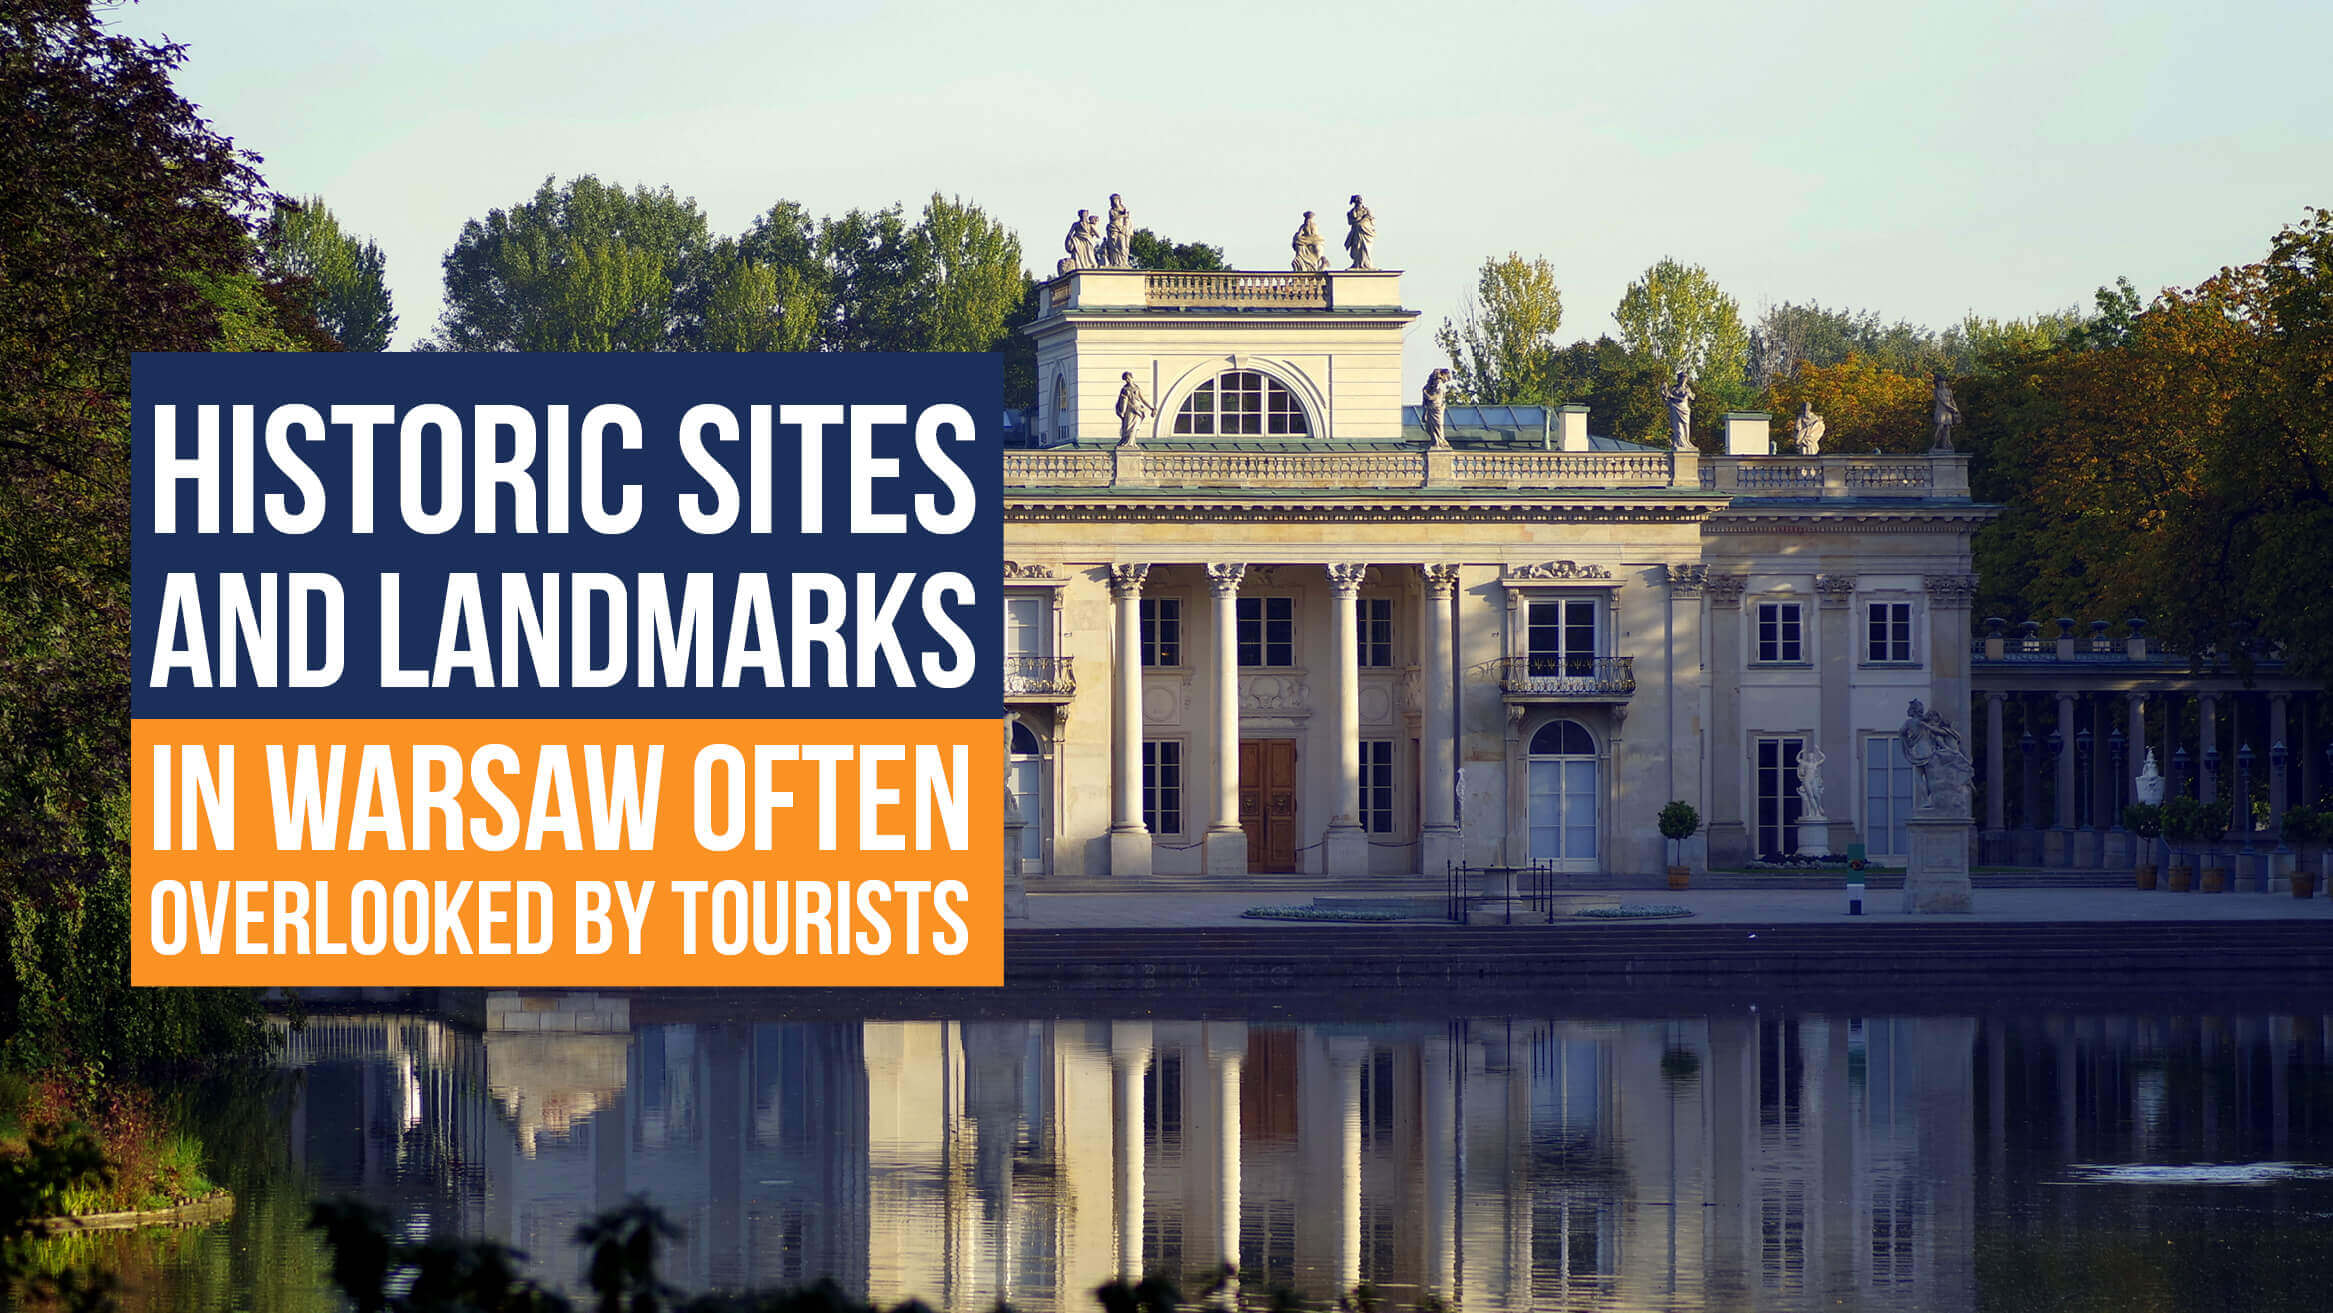 Historic Sites and Landmarks in Warsaw Often Overlooked by Tourists header